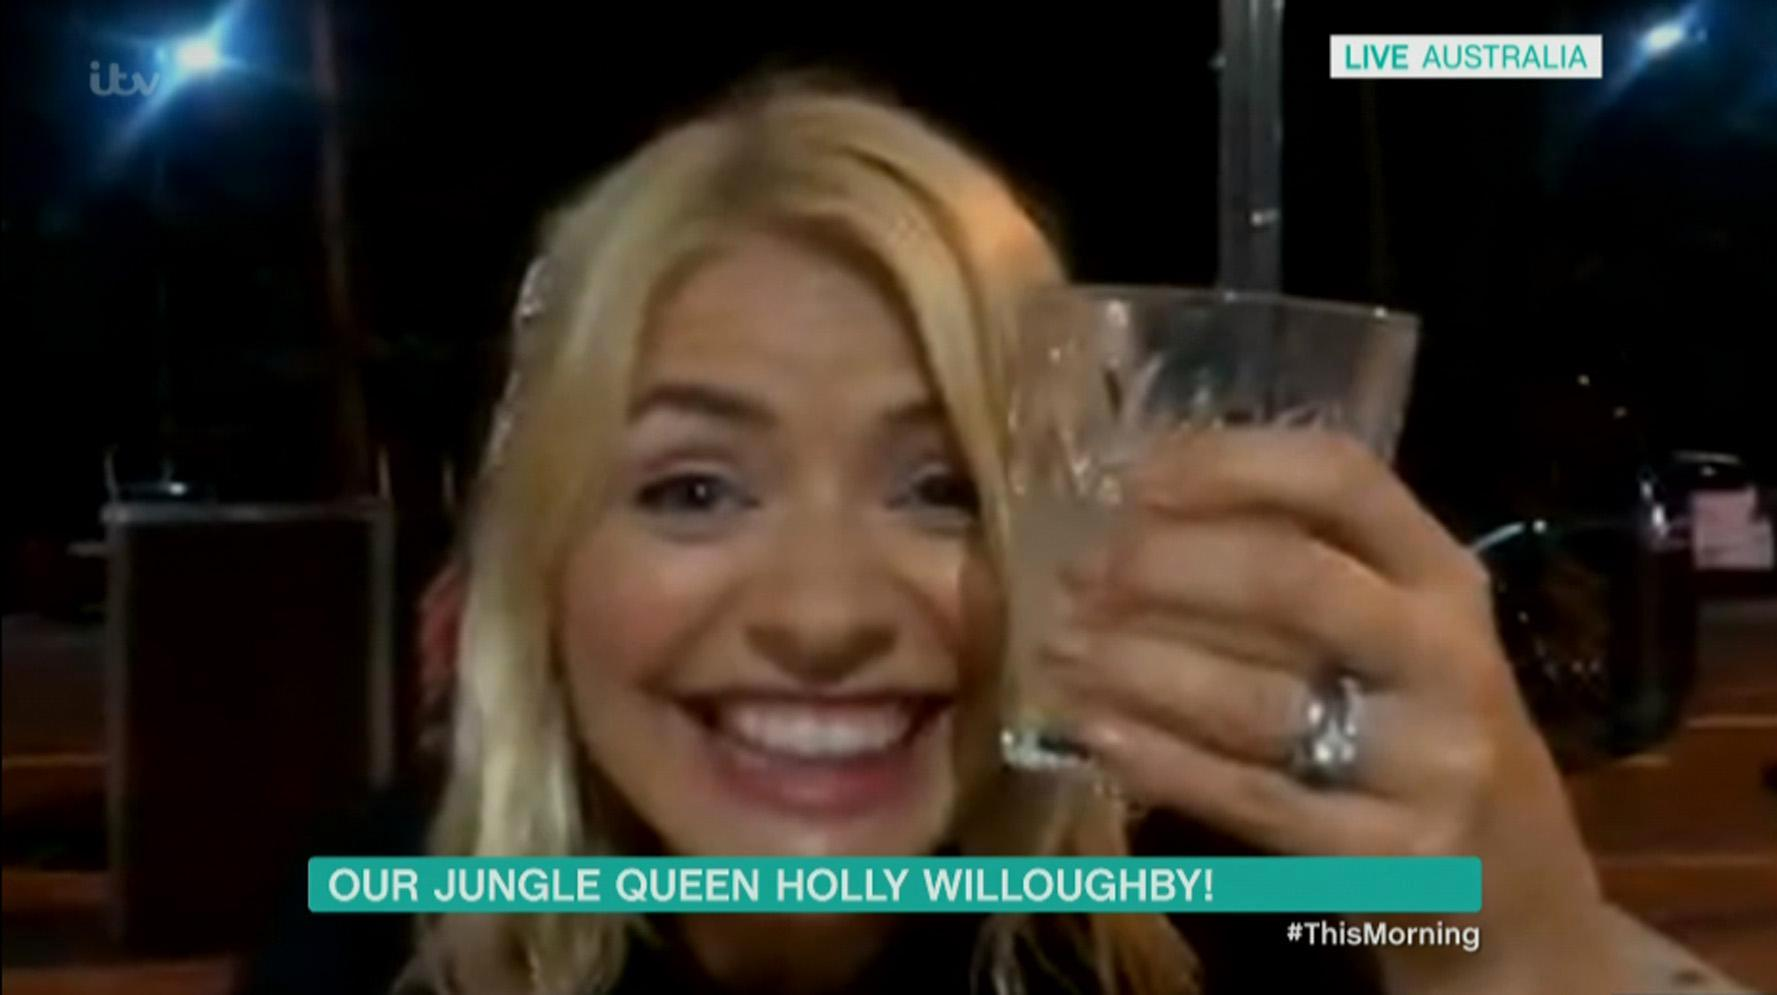 Tipsy Holly Willoughby thrills This Morning viewers as she appears for 'drunken reunion' with Phillip Schofield after 12 hours of drinking at I'm A Celeb wrap party